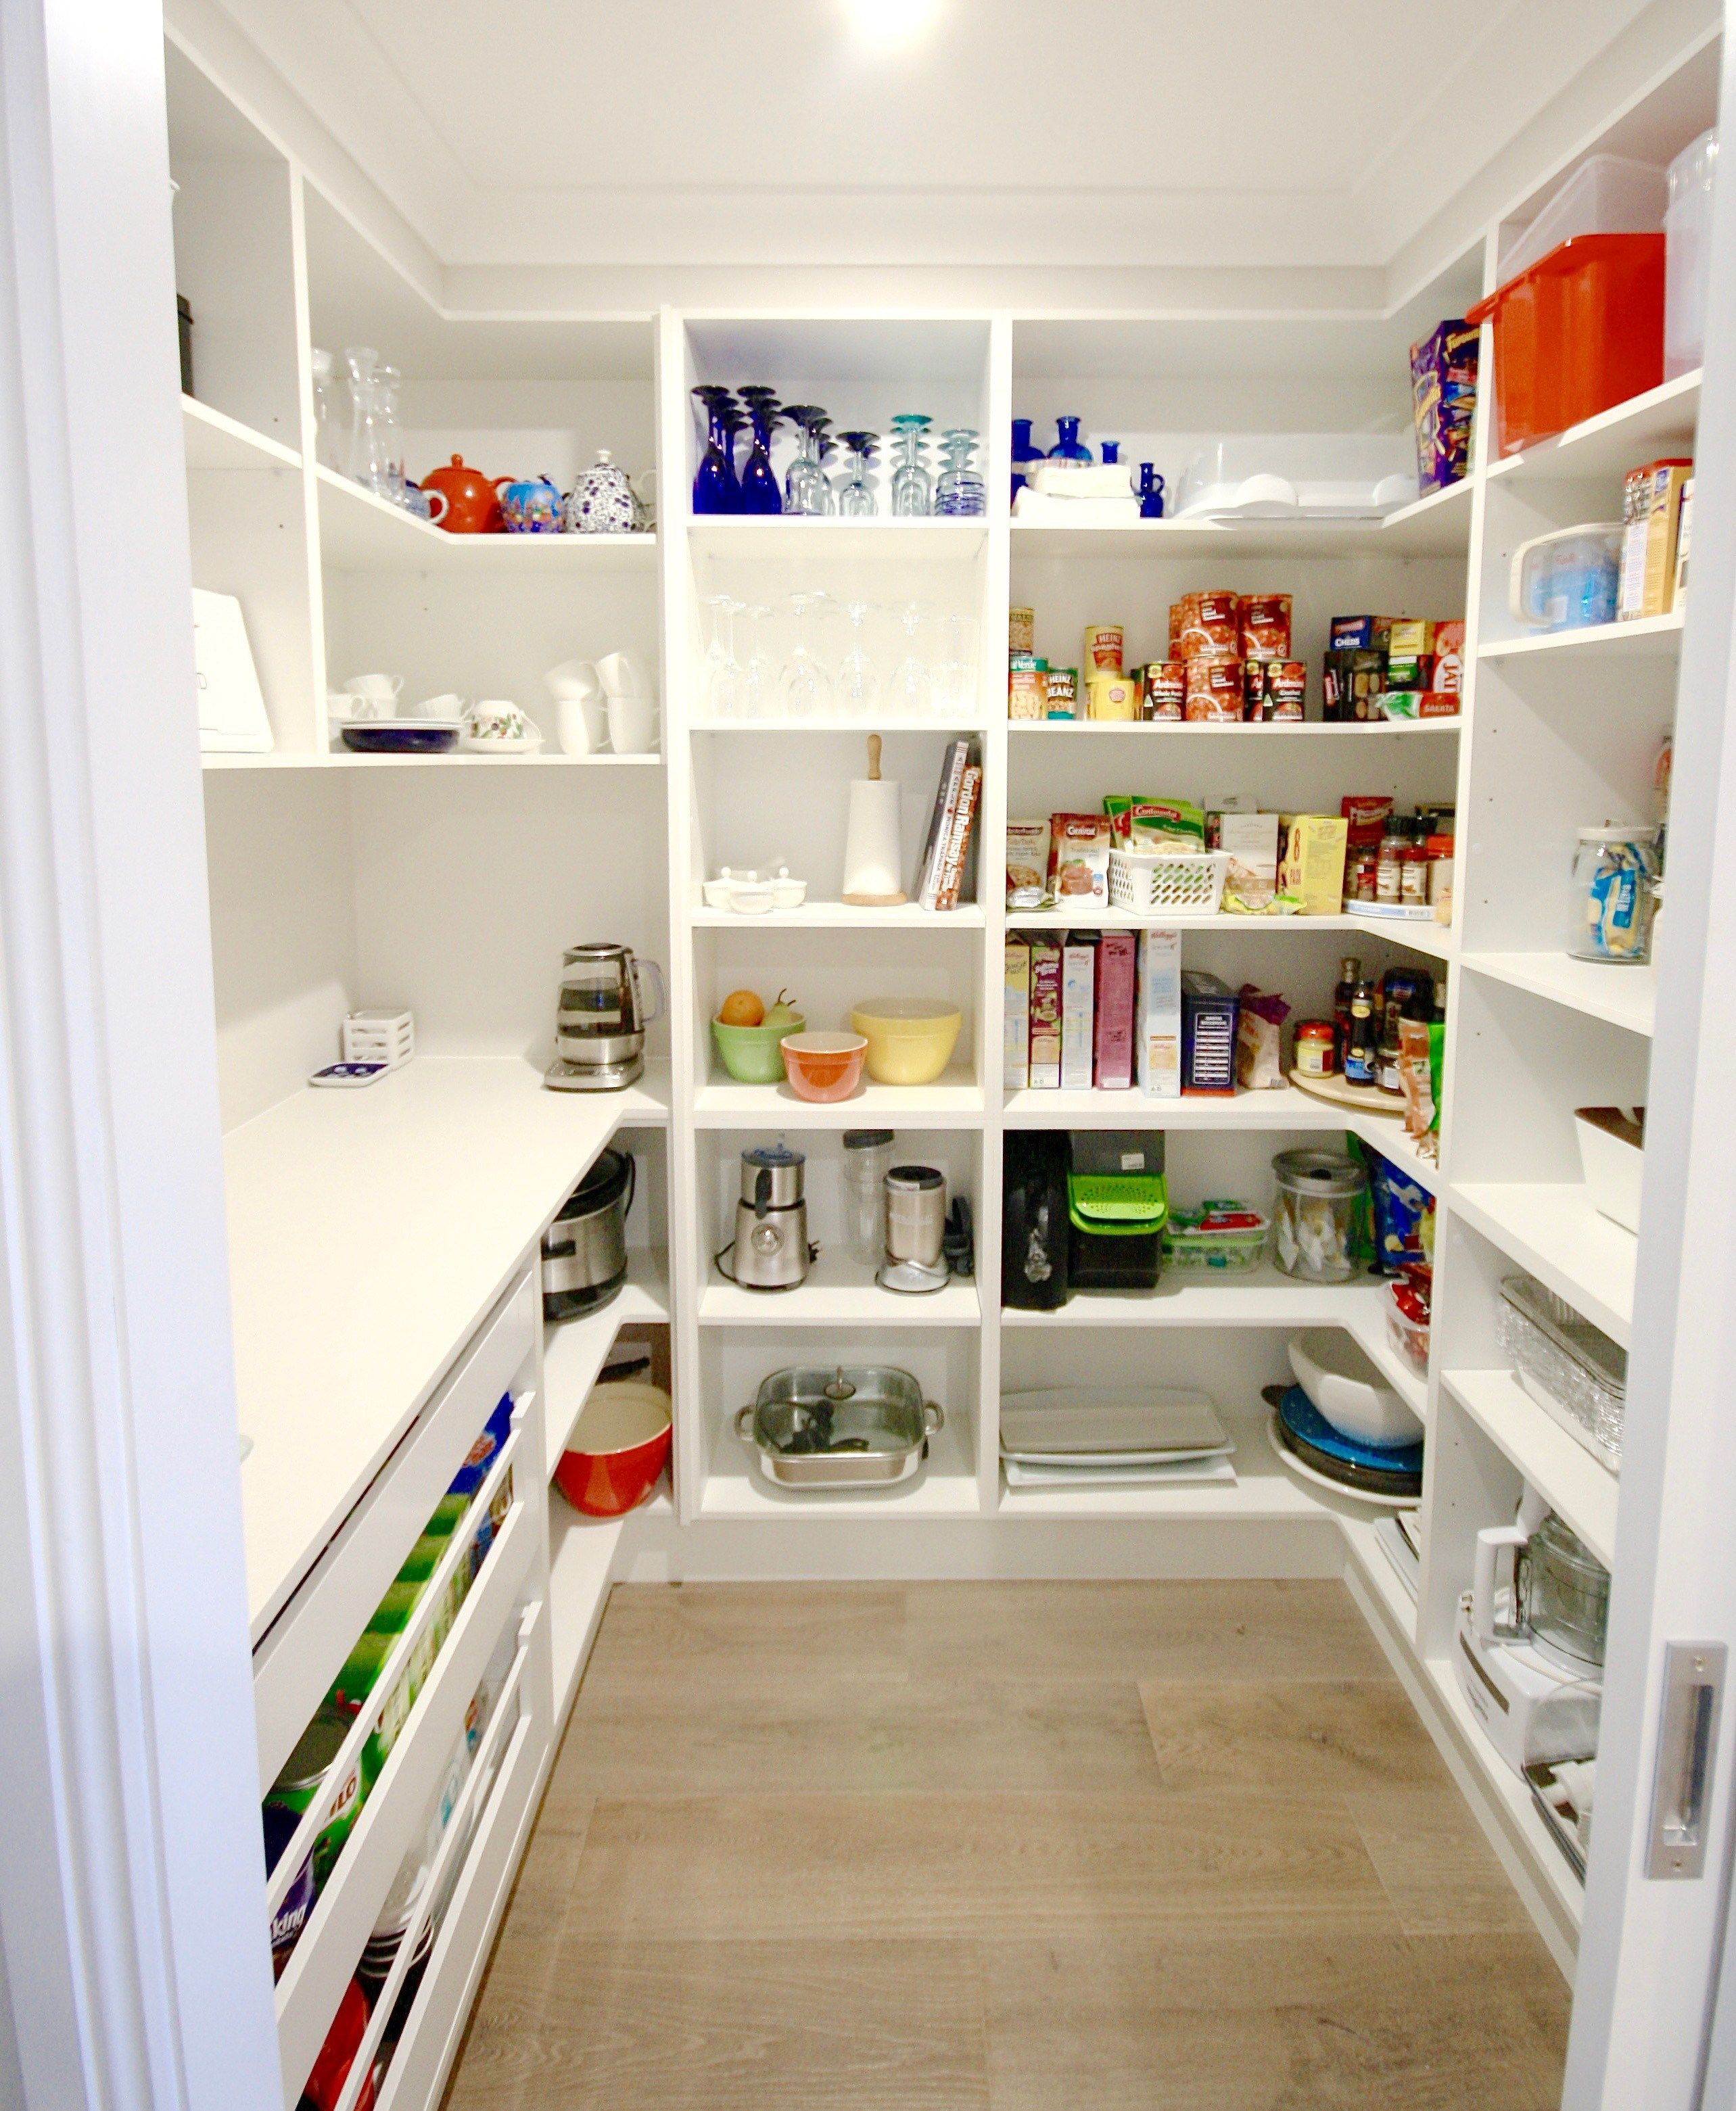 Large Pantry With Freezer Refrigerators  Lovely Large Pantry With